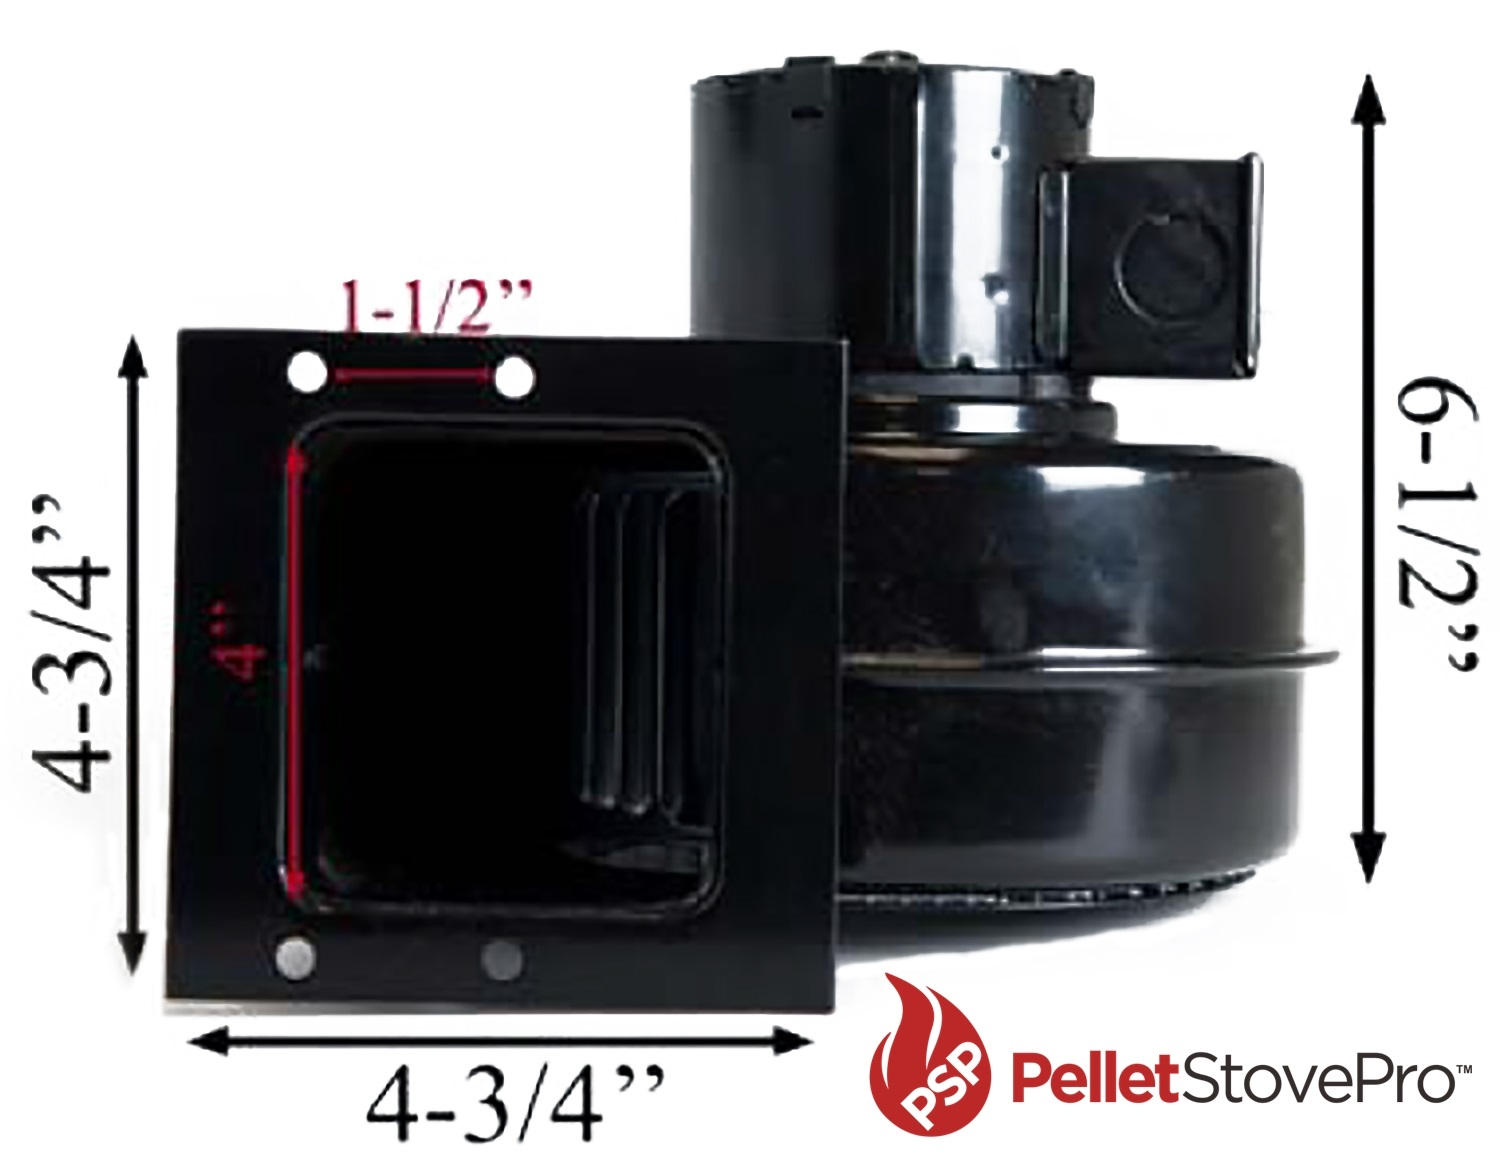 Earth Stove Pellet Stove Room Air Convection Blower Motor Fan 11 ...